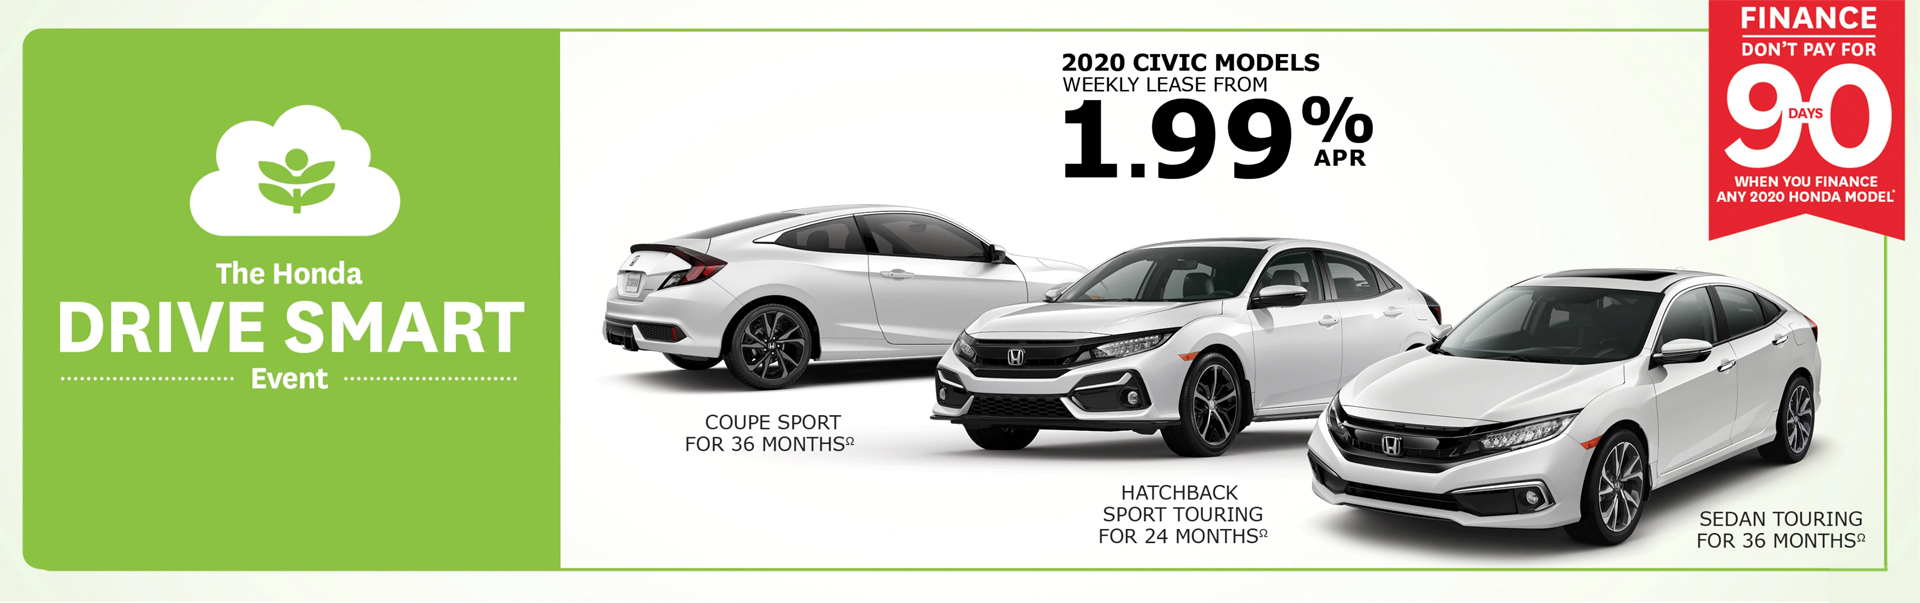 2020 Civic Models